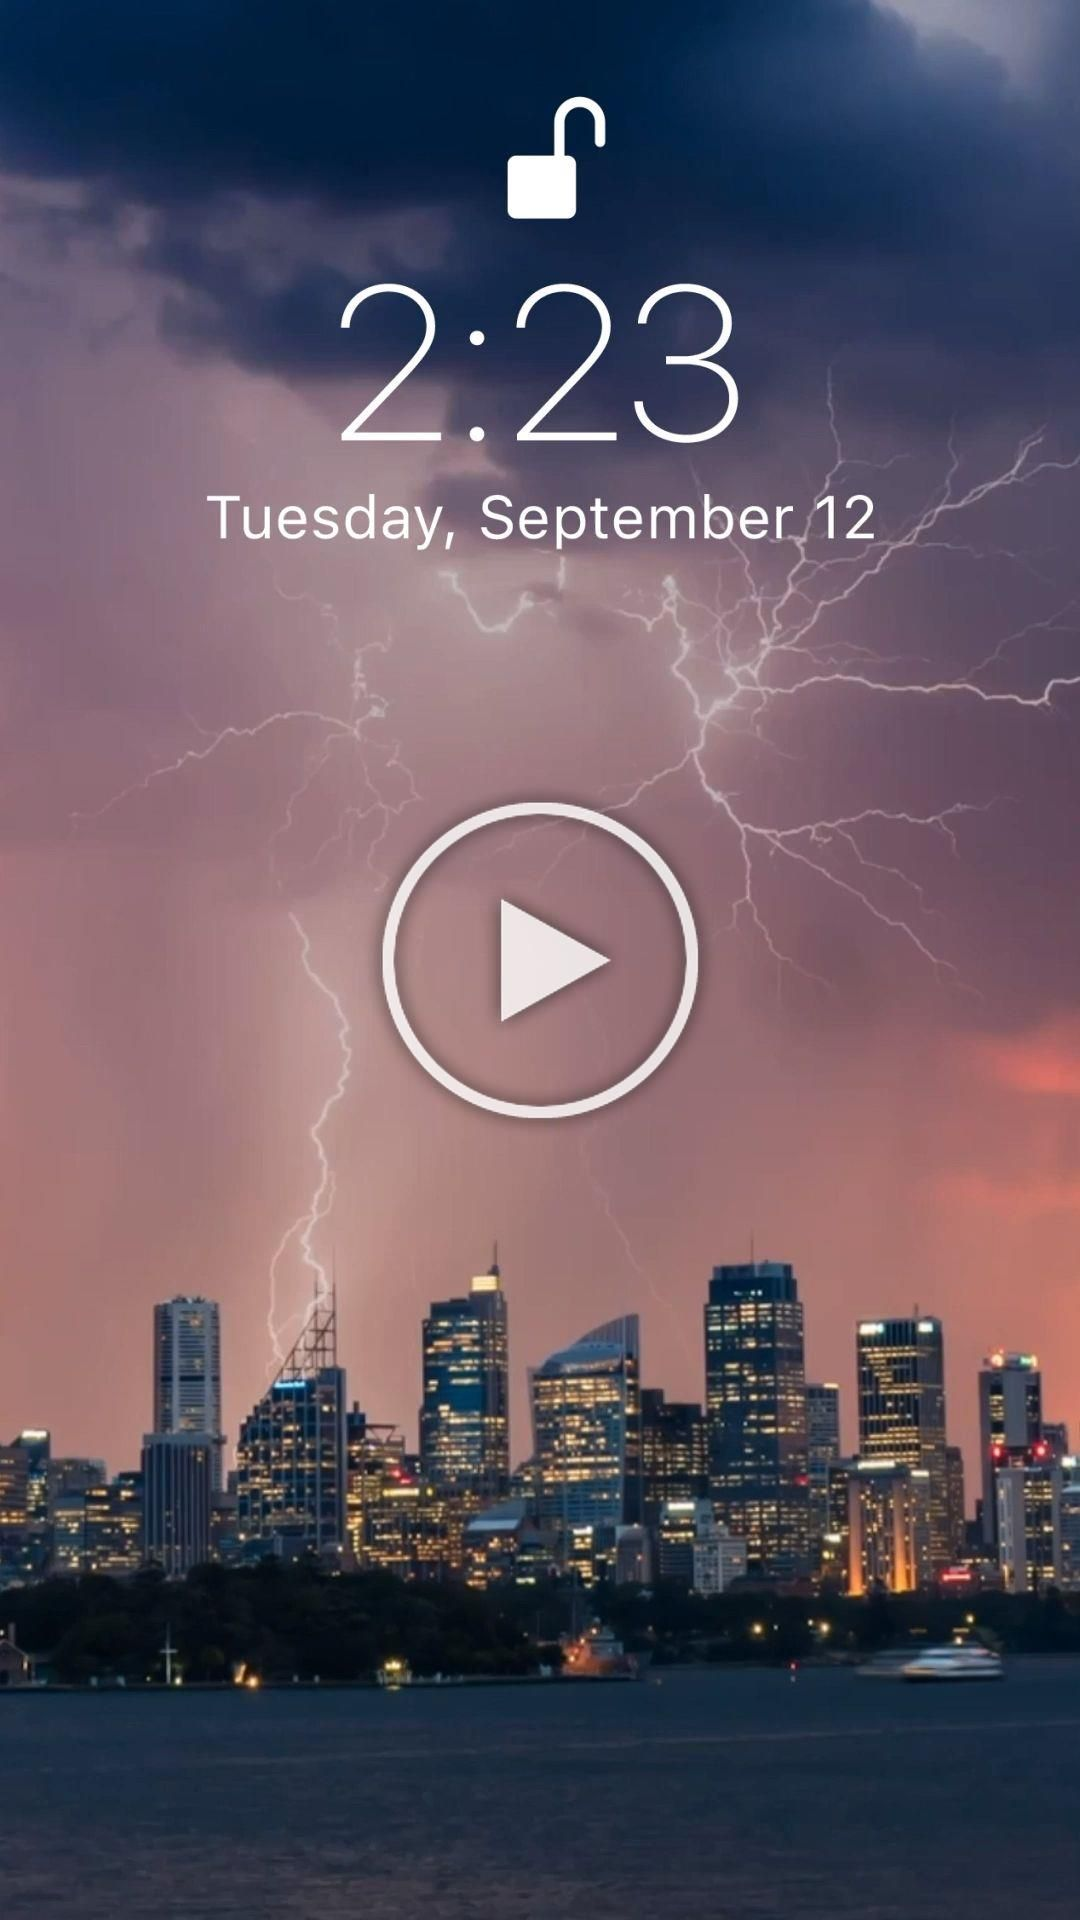 Live wallpaper for your iPhone XS from Everpix Live # ...